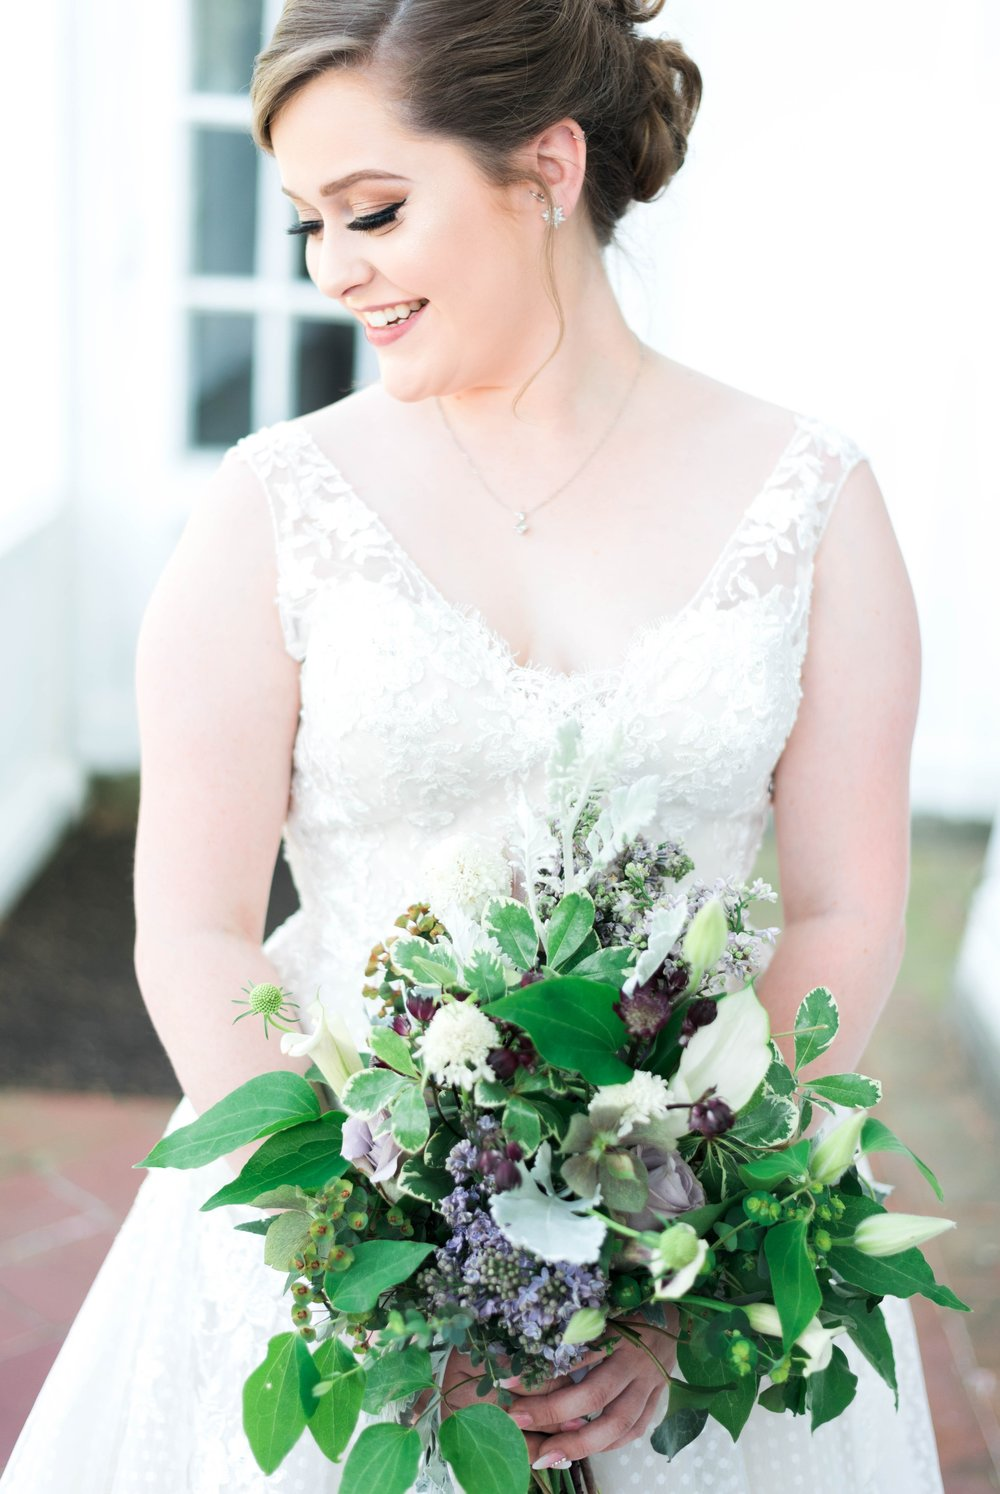 Jillian+Abi_OakridgeEstate_Wedding_VirginiaWeddingPhotographer_SpringWedding 25.jpg